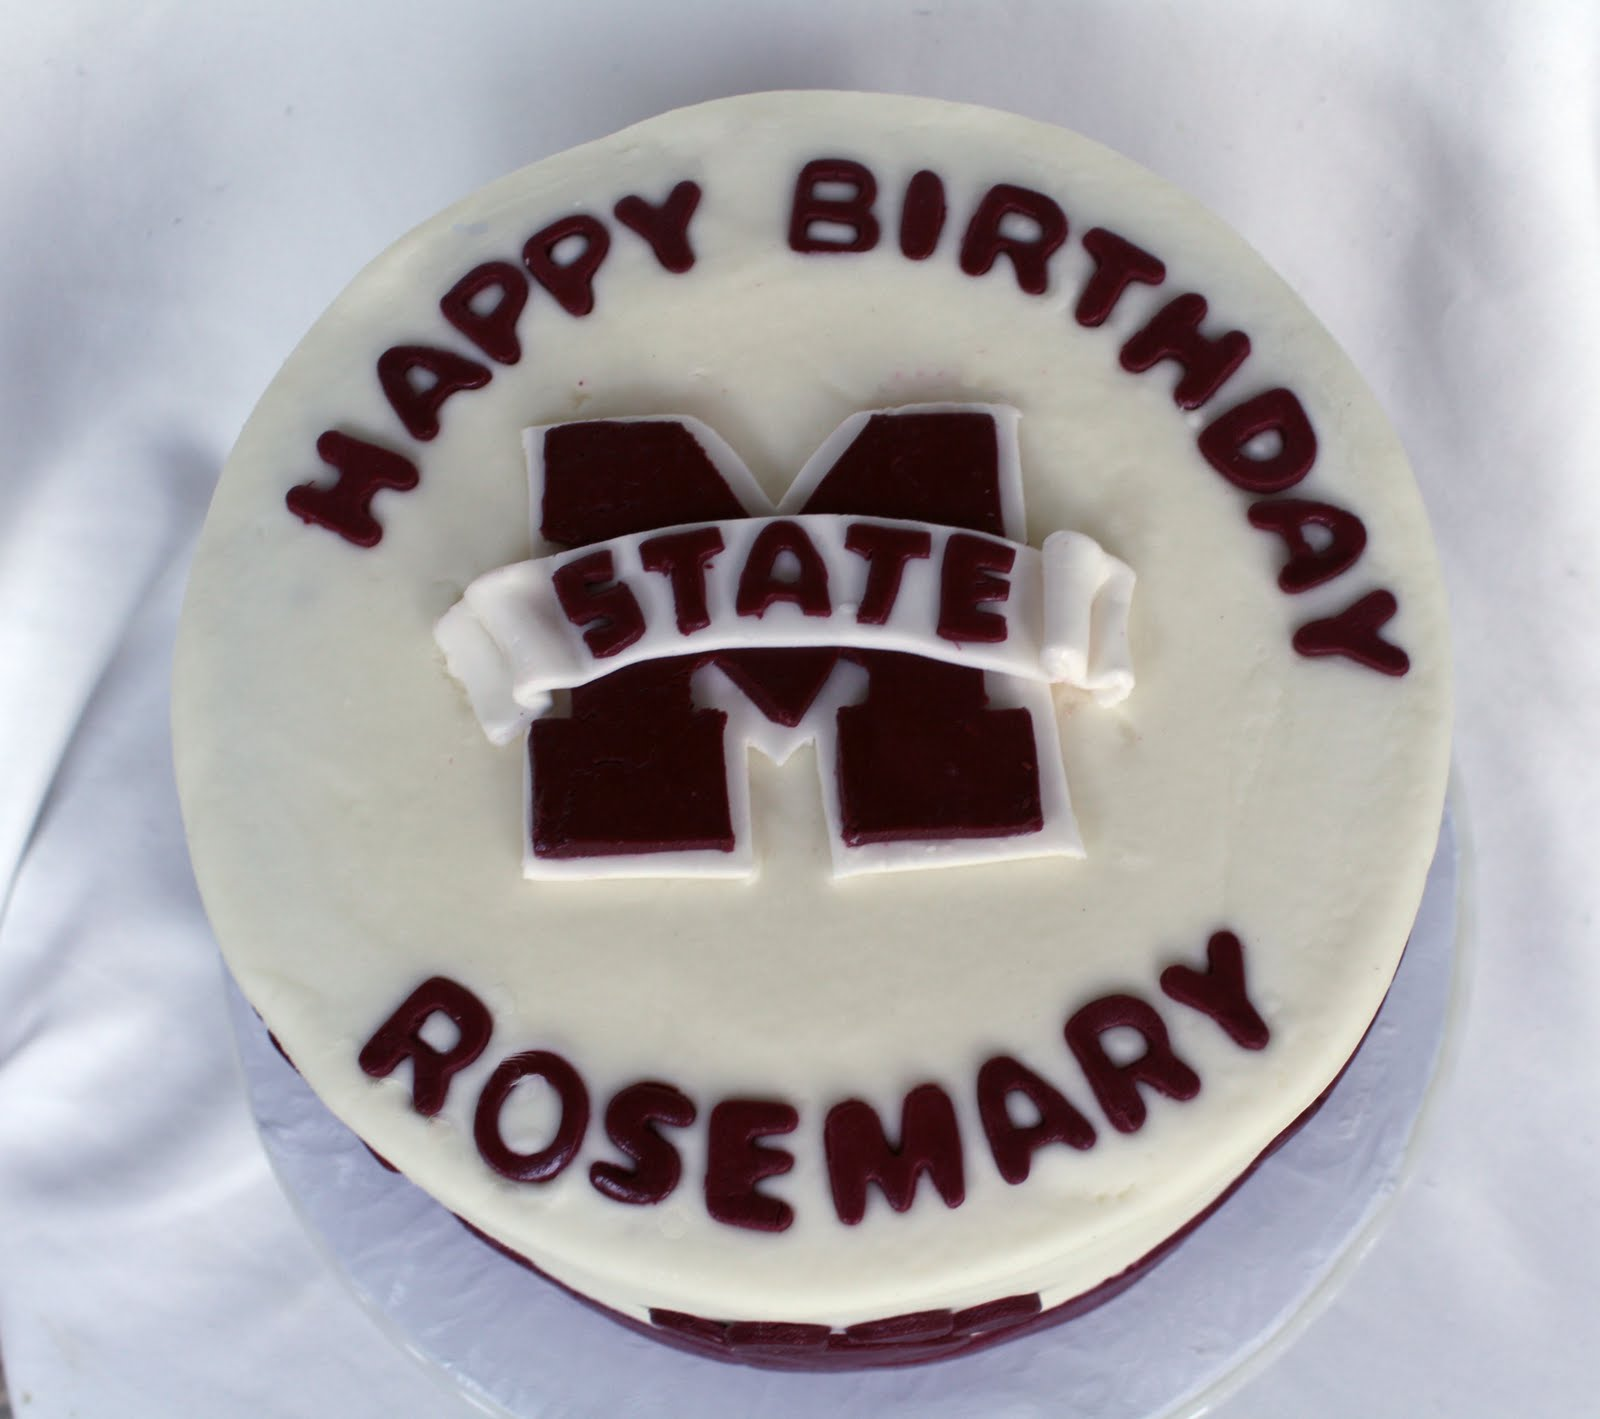 Mississippi State Cake Decorations